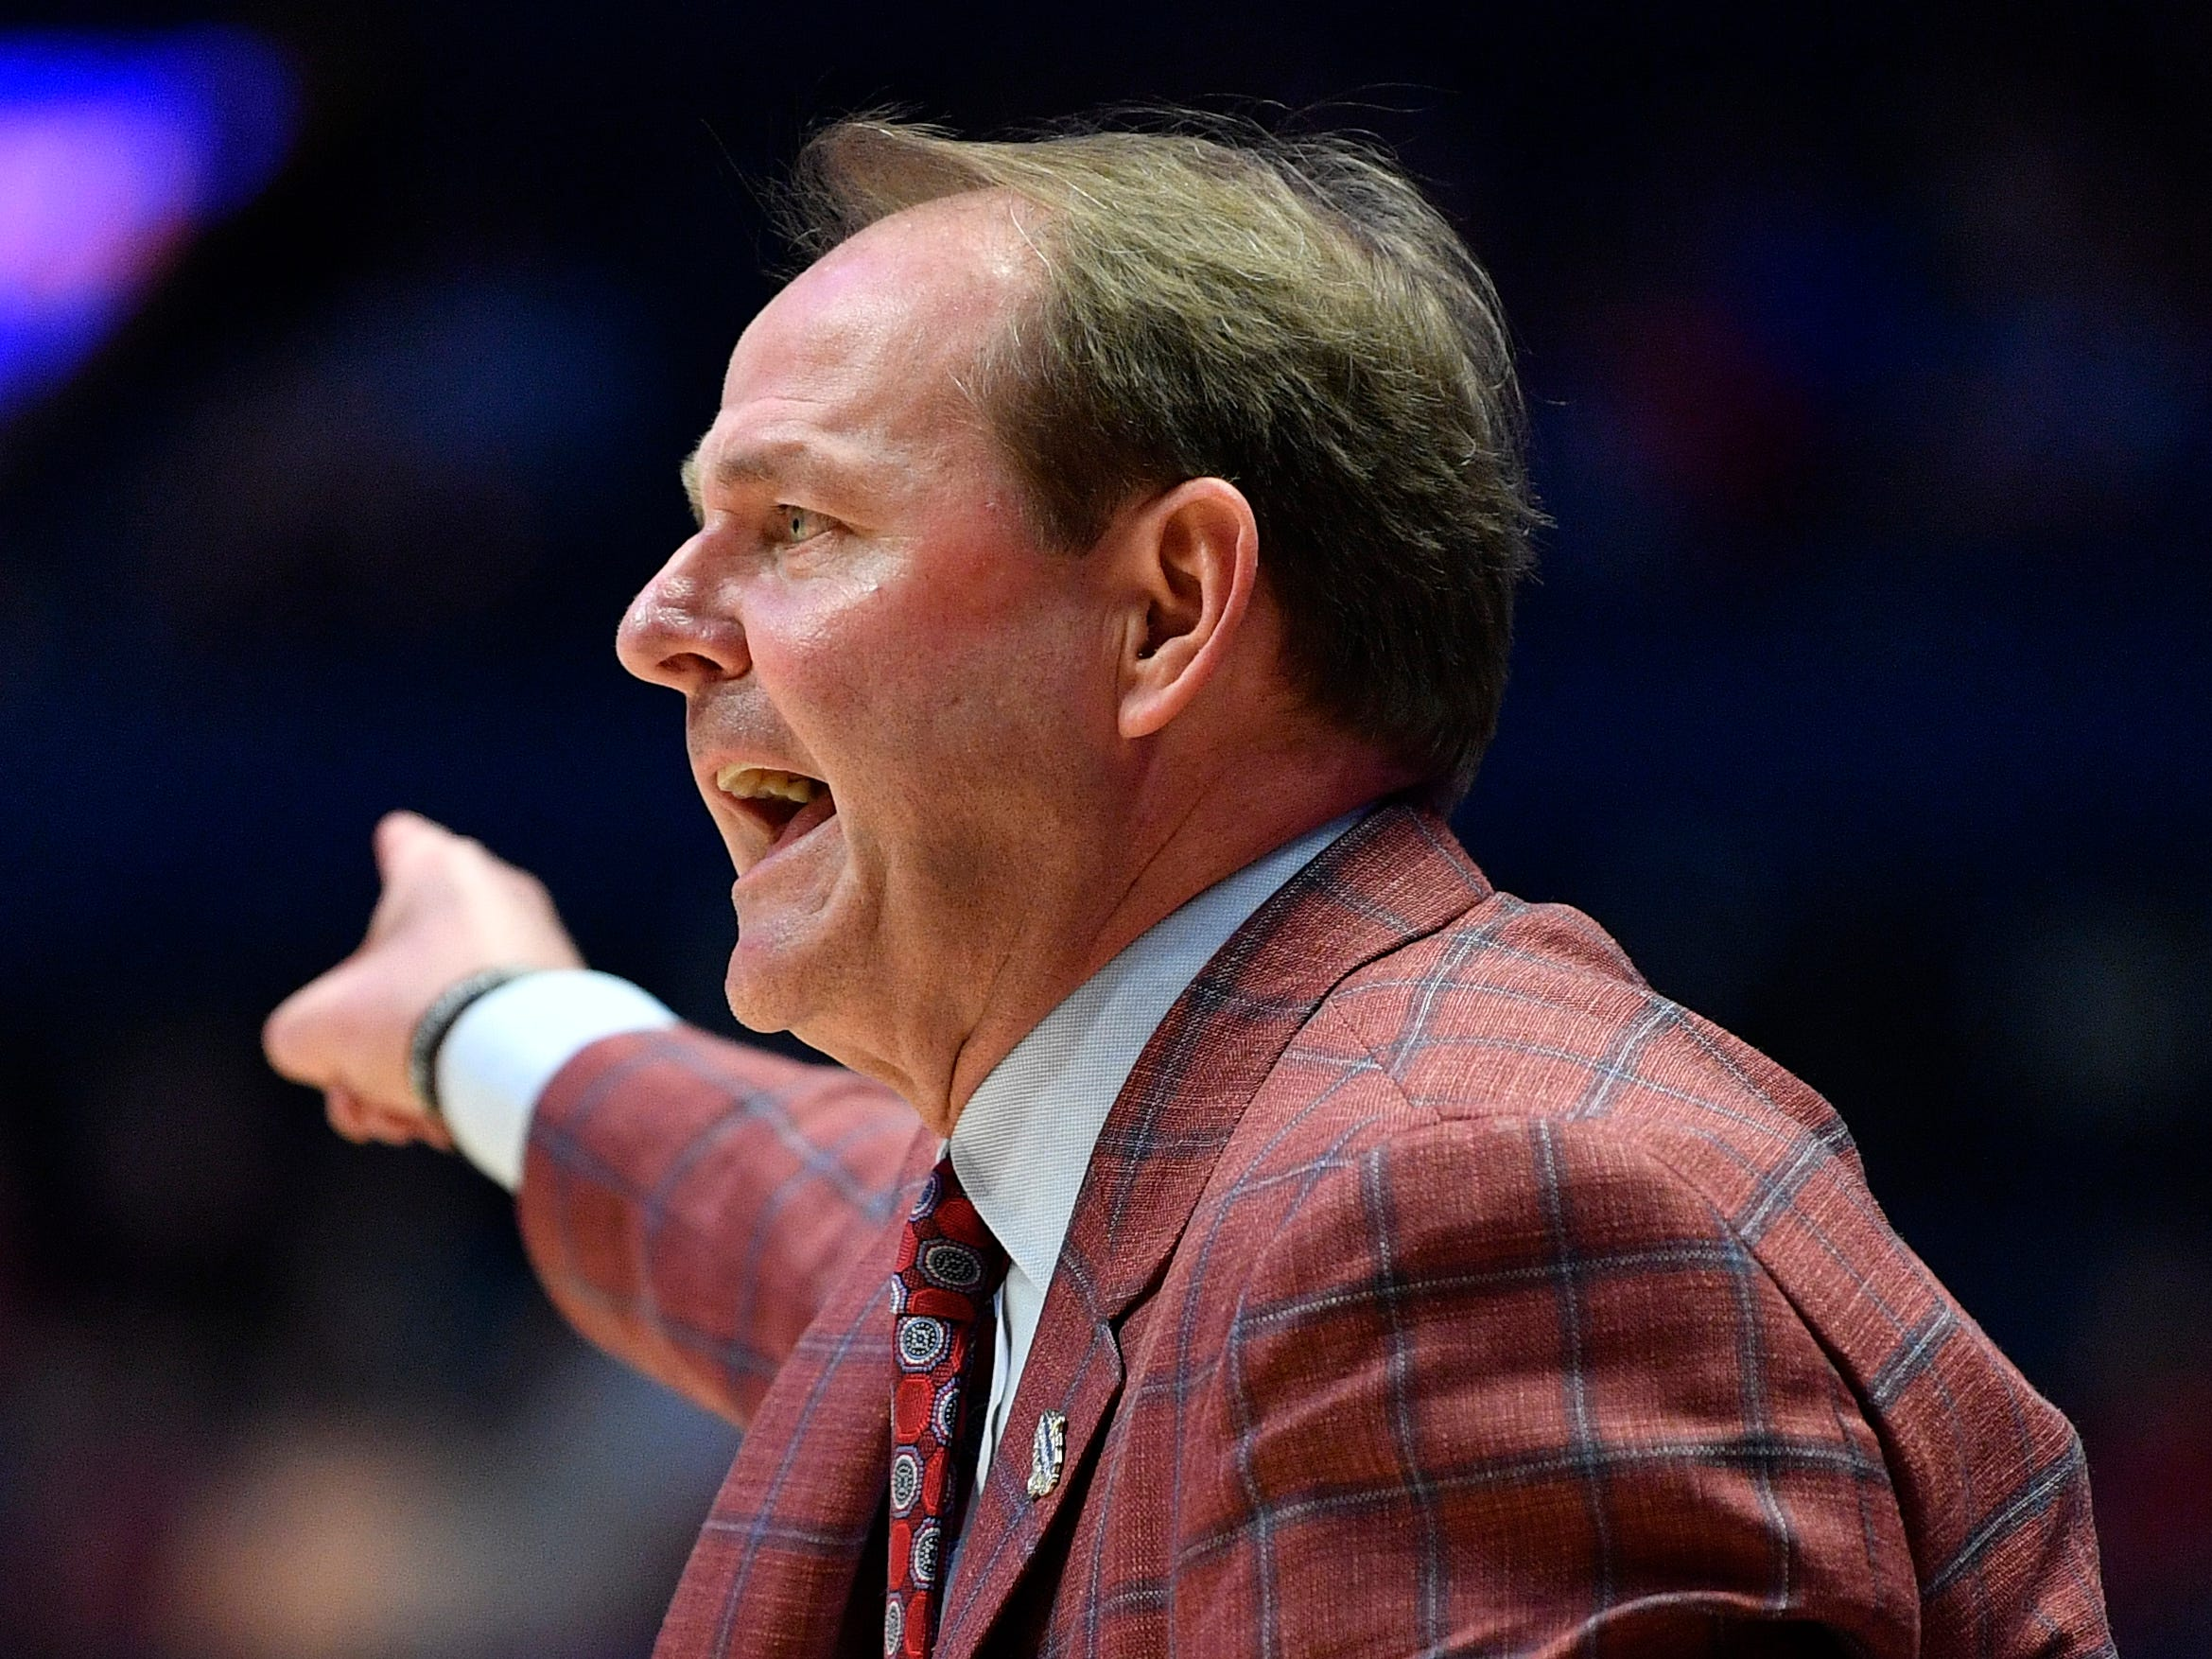 Ole Miss head coach Kermit Davis gestures to his team during the first half of the SEC Men's Basketball Tournament game at Bridgestone Arena in Nashville, Tenn., Thursday, March 14, 2019.